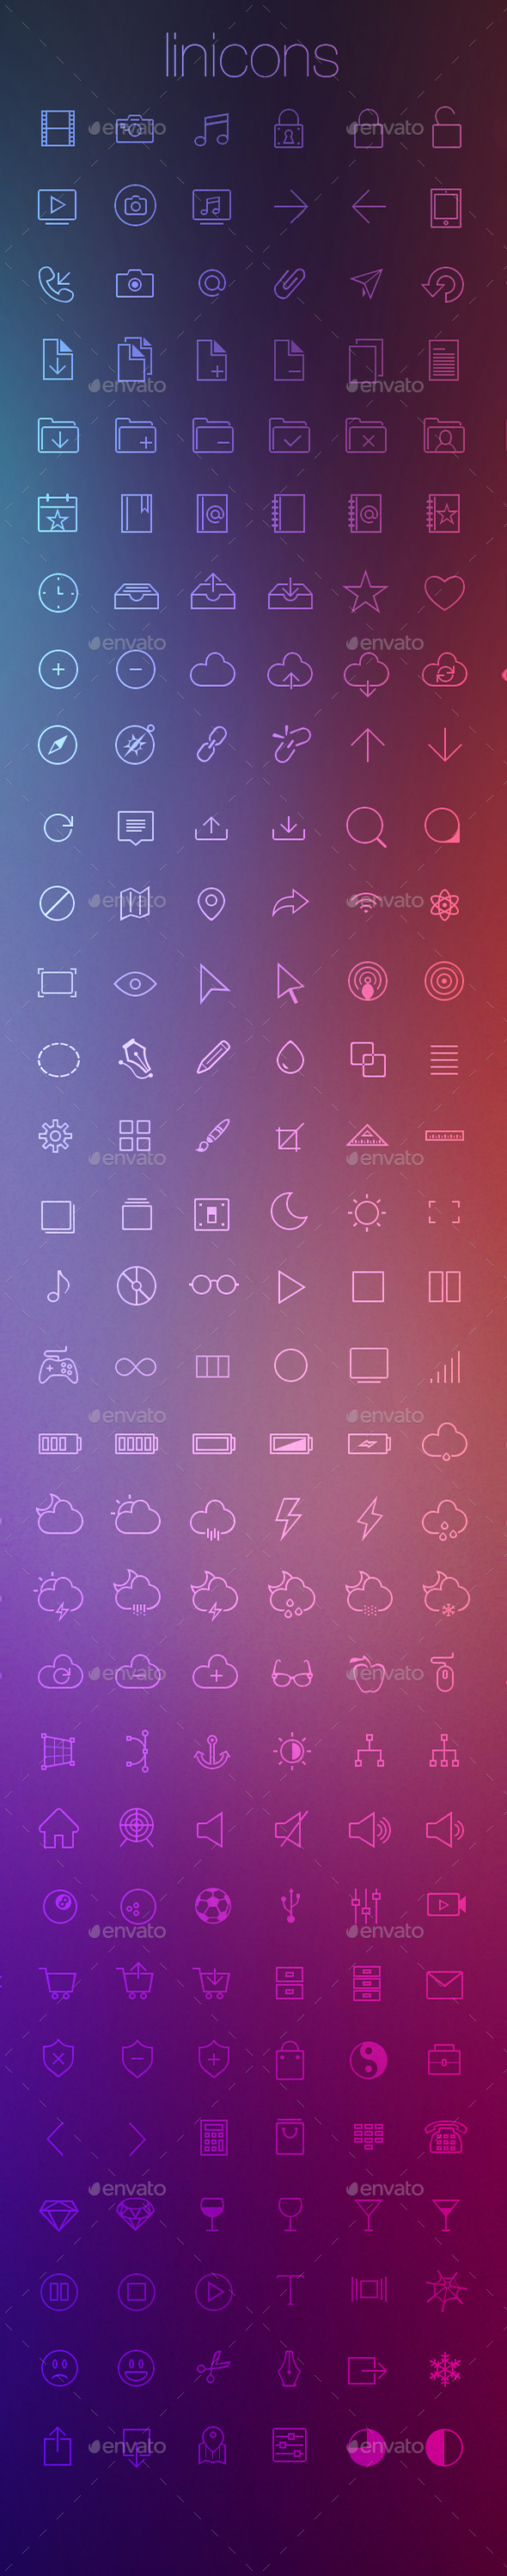 Linicons - 310 stroke icons CSH PSD PNG